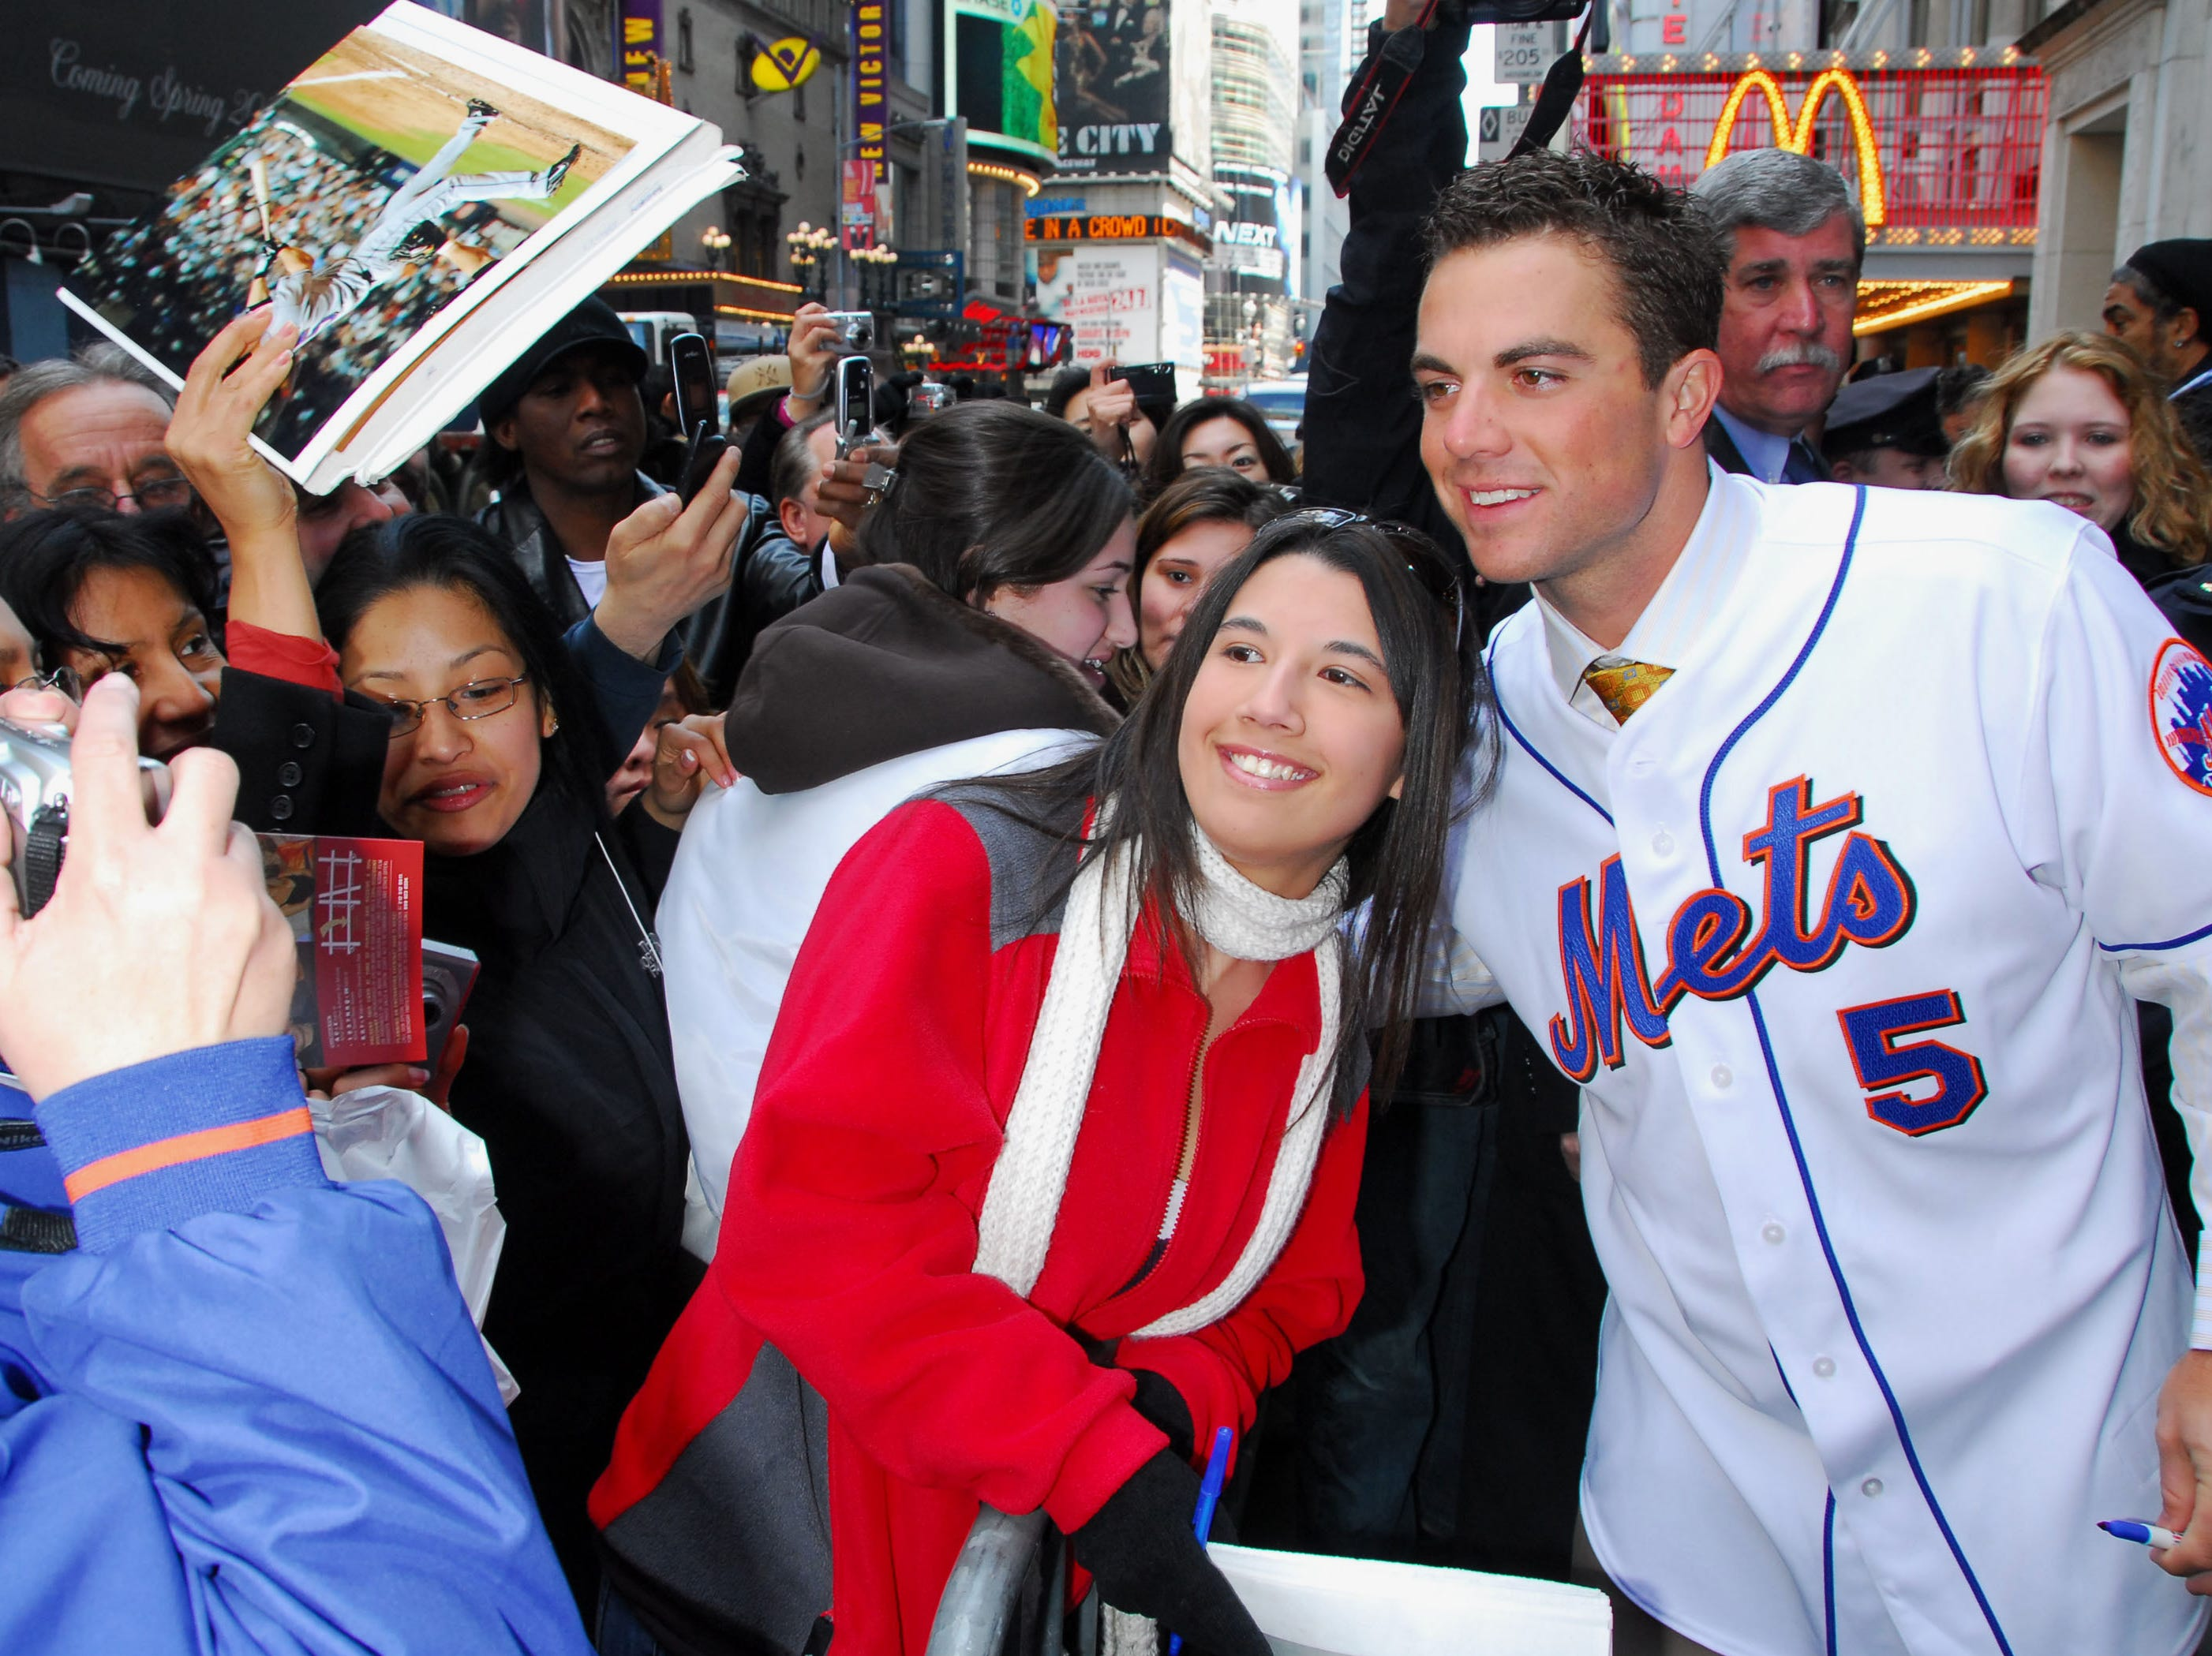 In this photo released by Madame Tussauds in New York, Mets third baseman David Wright, right, has his photo taken with a fan outside Madame Tussauds in New York, Tuesday, April 10, 2007. Wright was on hand for the unveiling of his wax likeness at the museum. (AP Photo/Madame Tassauds, Alex Oliveria) **NO SALES**